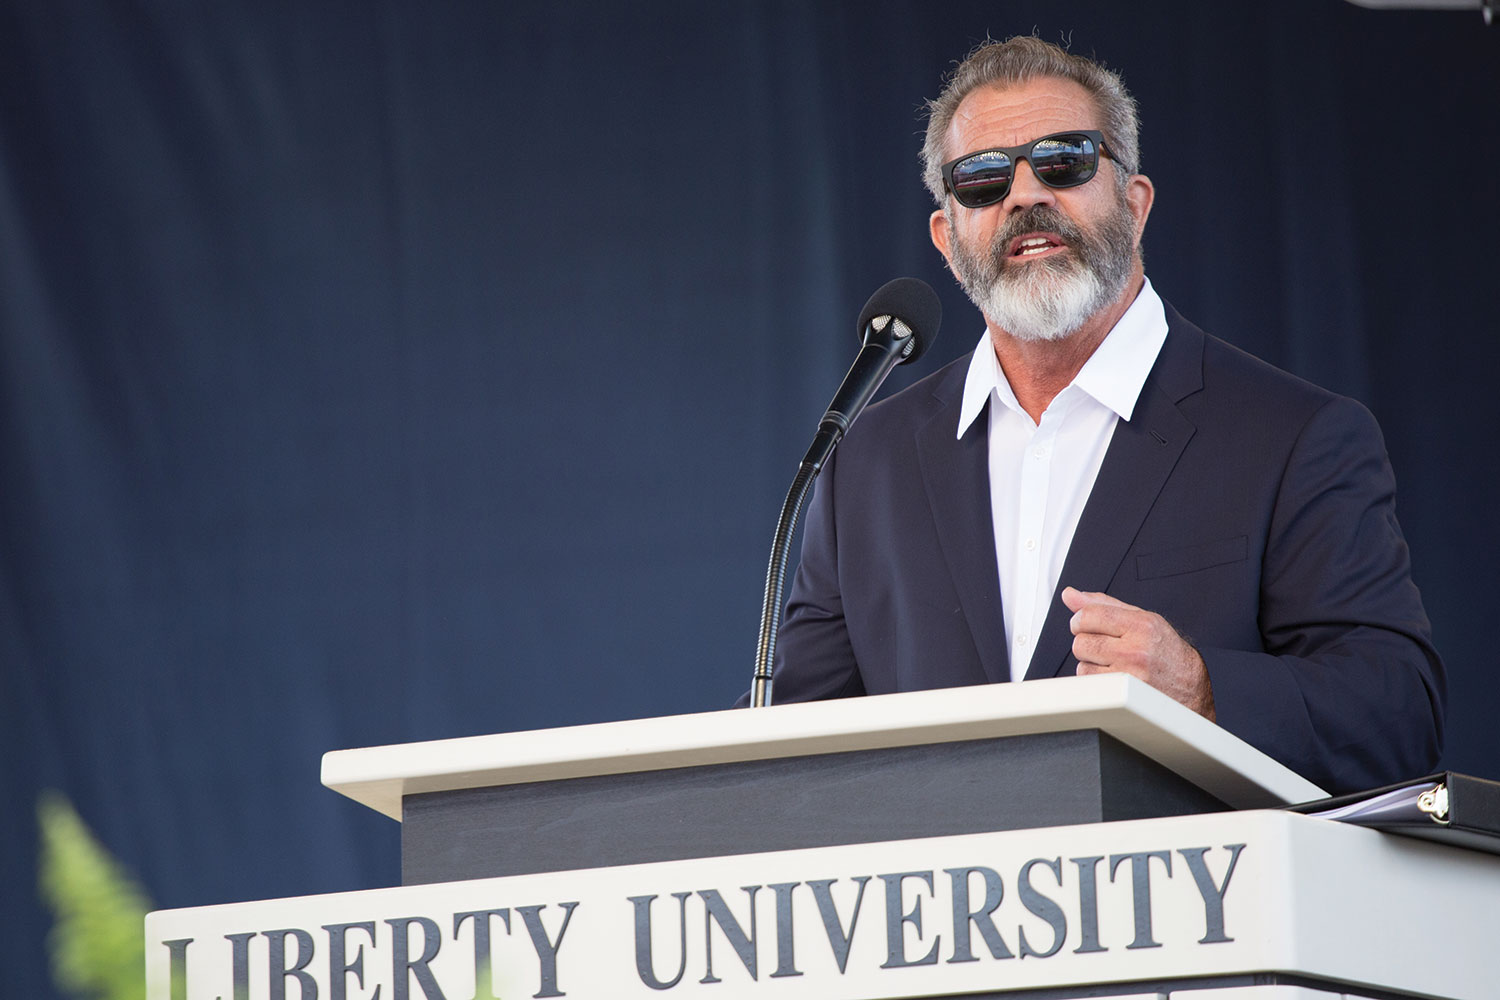 Hollywood actor/director/producer surprised graduates at Liberty's 43rd Commencement.